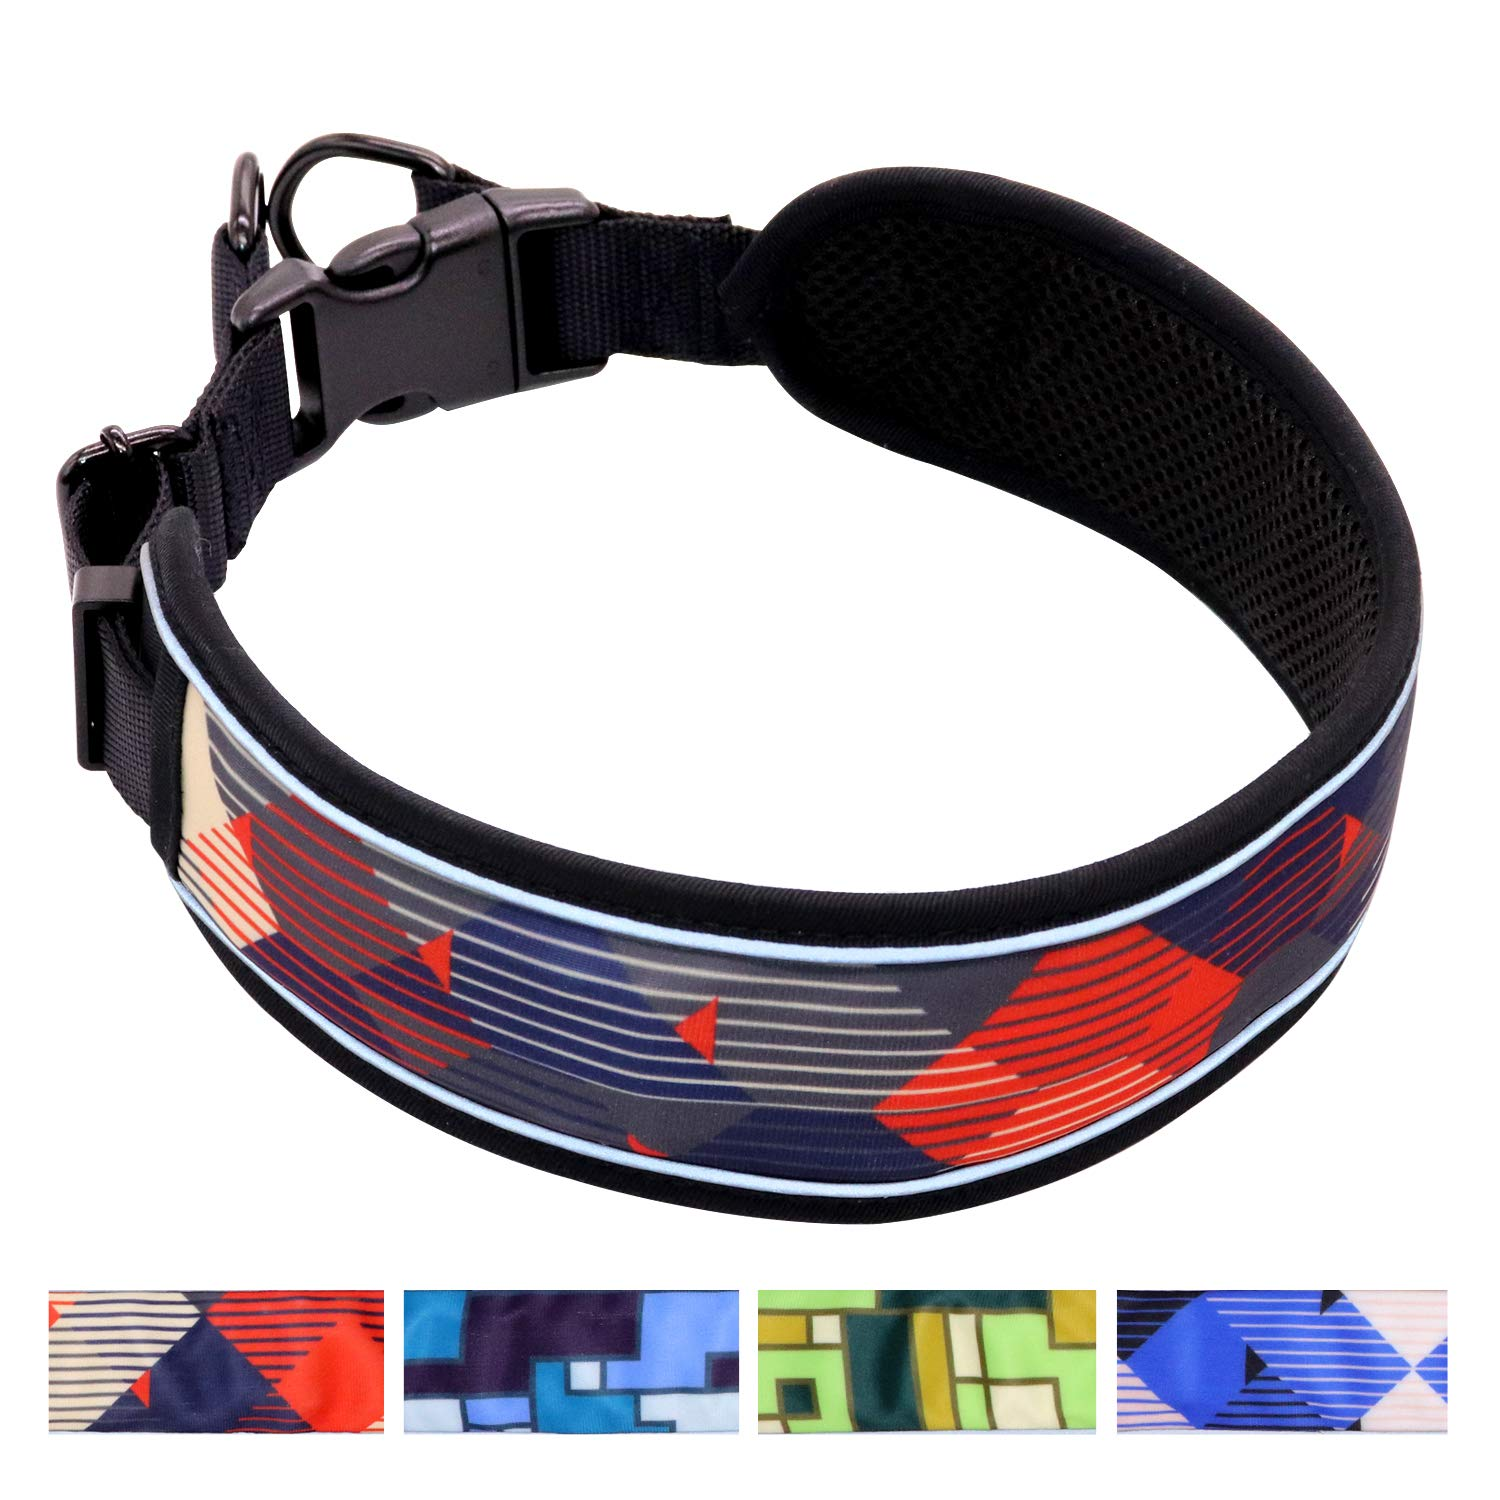 Taglory 2019 Newest Padded Martingale Dog Collars,Stylish Stripe Pattern and Unique Adjustment Design Dog Collars,Fits Large Dogs Training and Walking,Red L